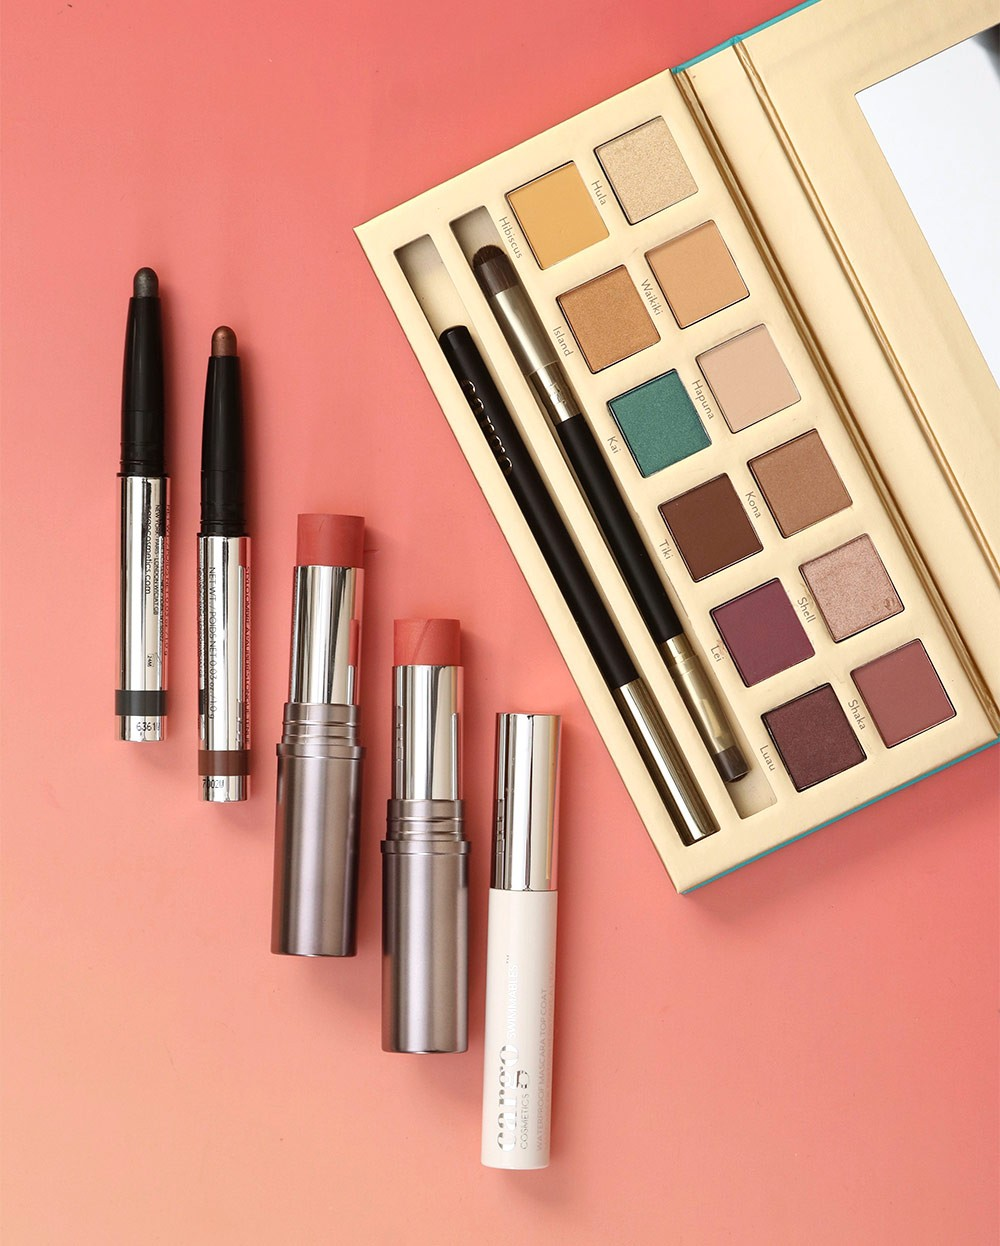 You Had Me at Aloha, Cargo! The Cargo Limited Edition Summer Eyeshadow Palette